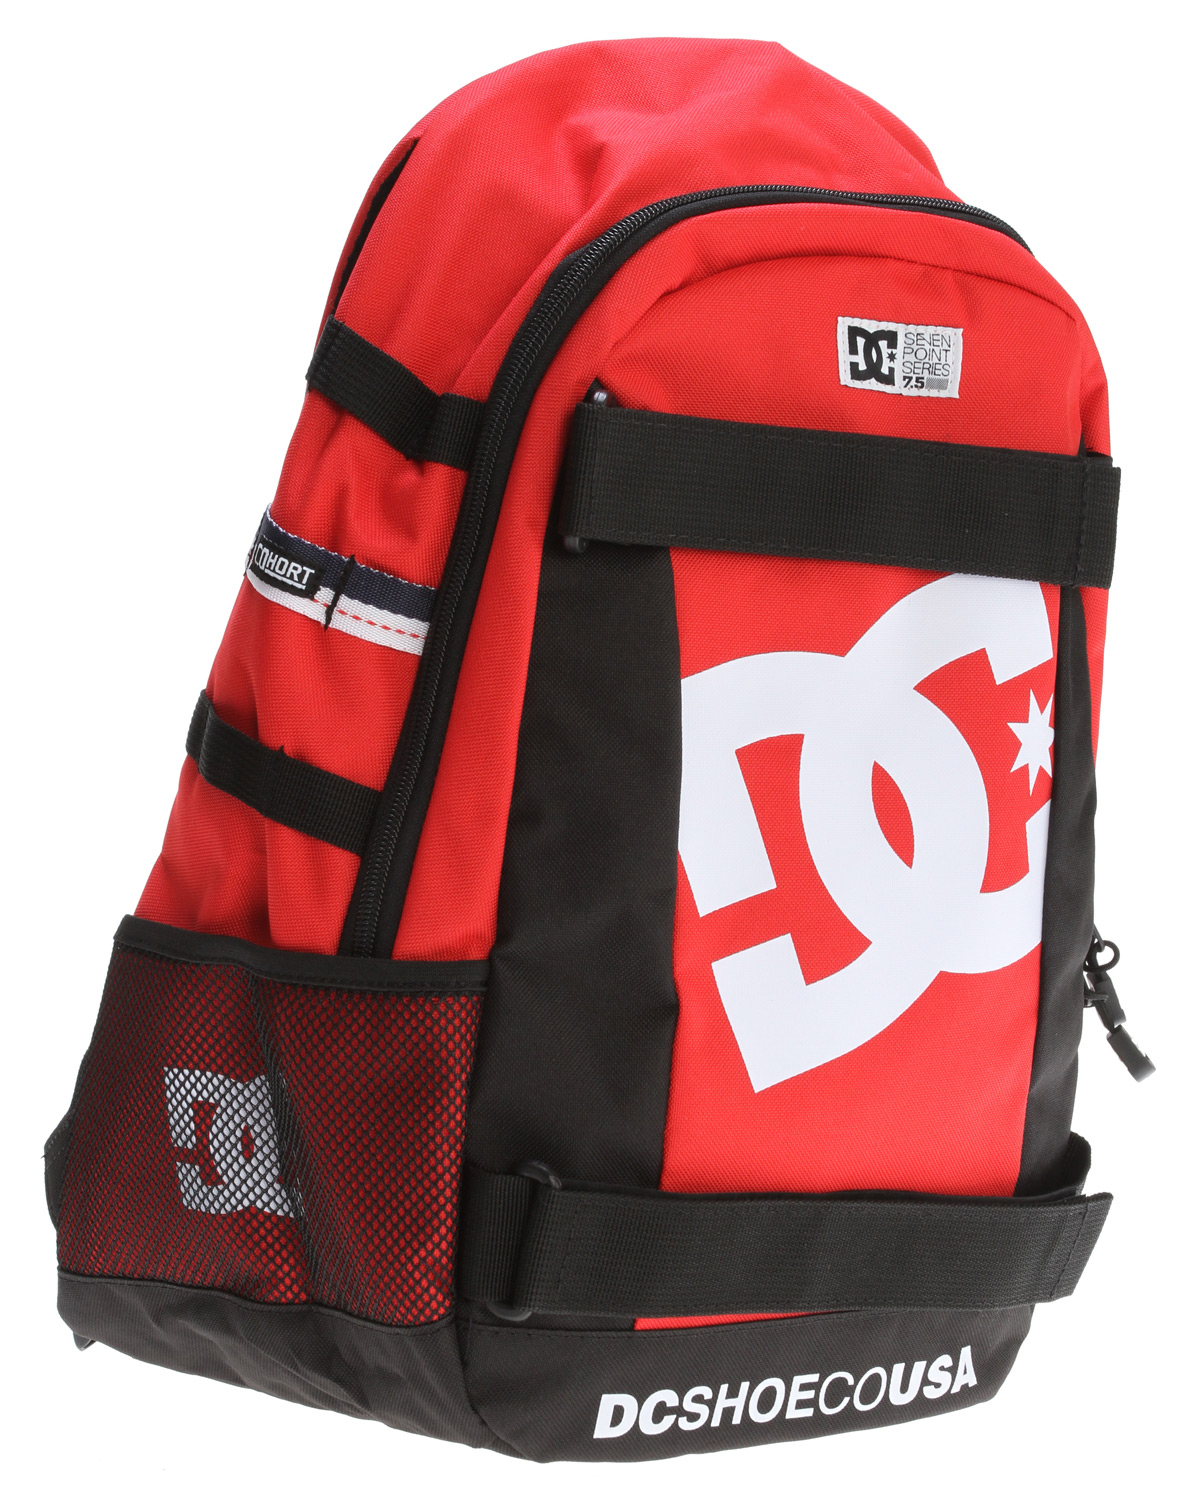 "Skateboard Key Features of the DC Seven Point 5 Backpack: One Size - 18.75"" X 11.5"" X 8"" (25L Vol) 100% Polyester Entry Level skate backpack front dual skate straps large main compartment with interior organizer laptop slip compartment side mesh pockets with DC logo screenprint padded backpanel and shoulder straps ergonomically designed to distribute weight correctly custom zipper pulls and branding throughout DC Cohort Integration compatible - $31.95"